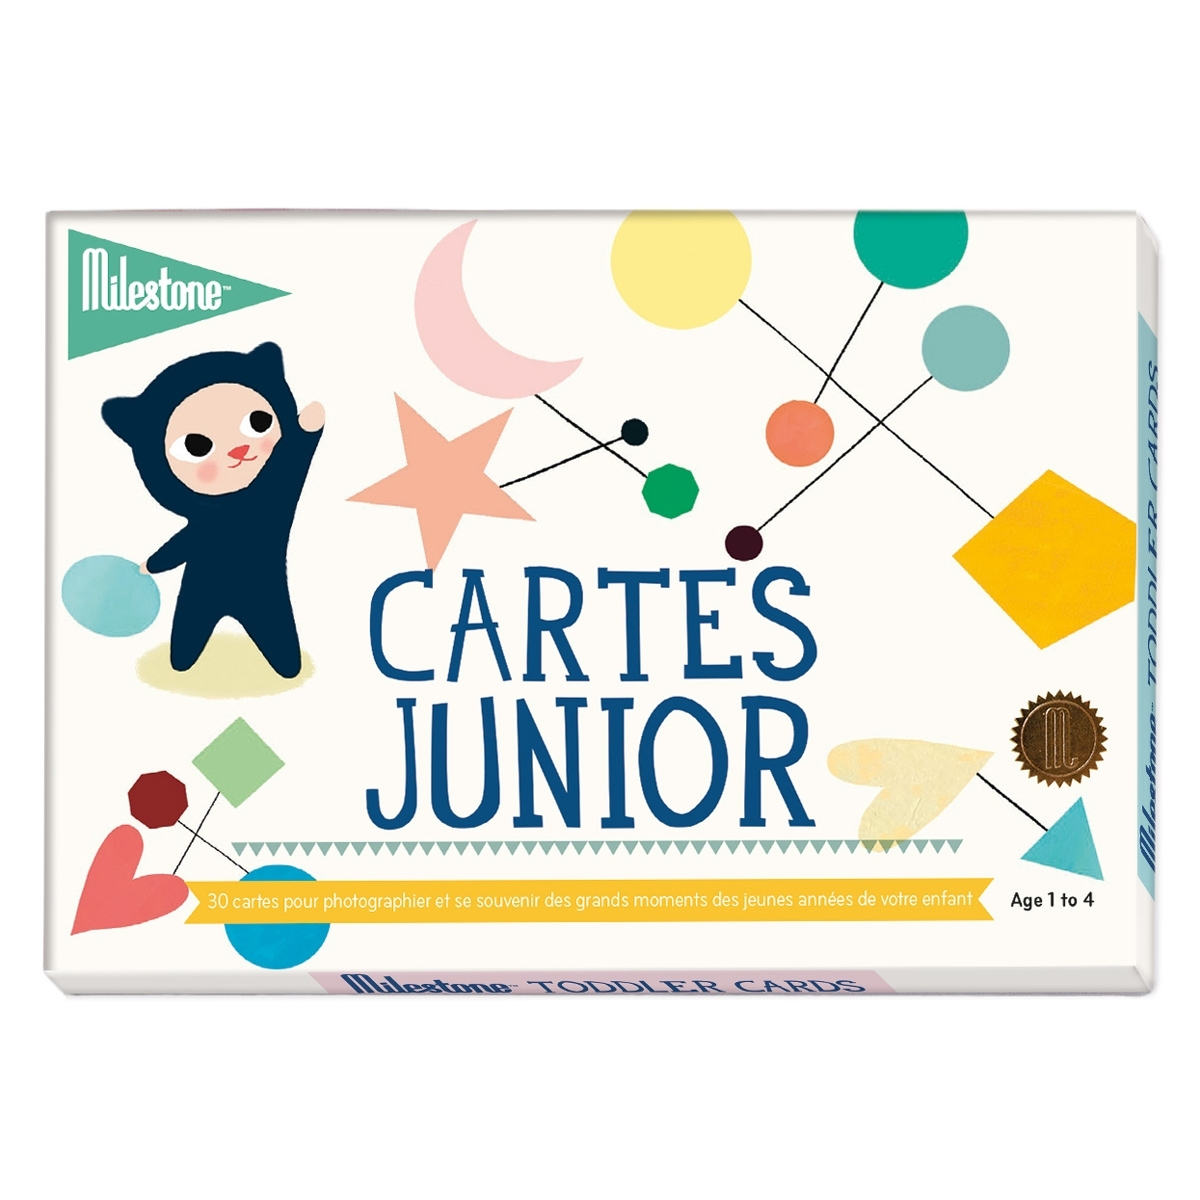 Livre & Carte Cartes Junior Cartes Junior